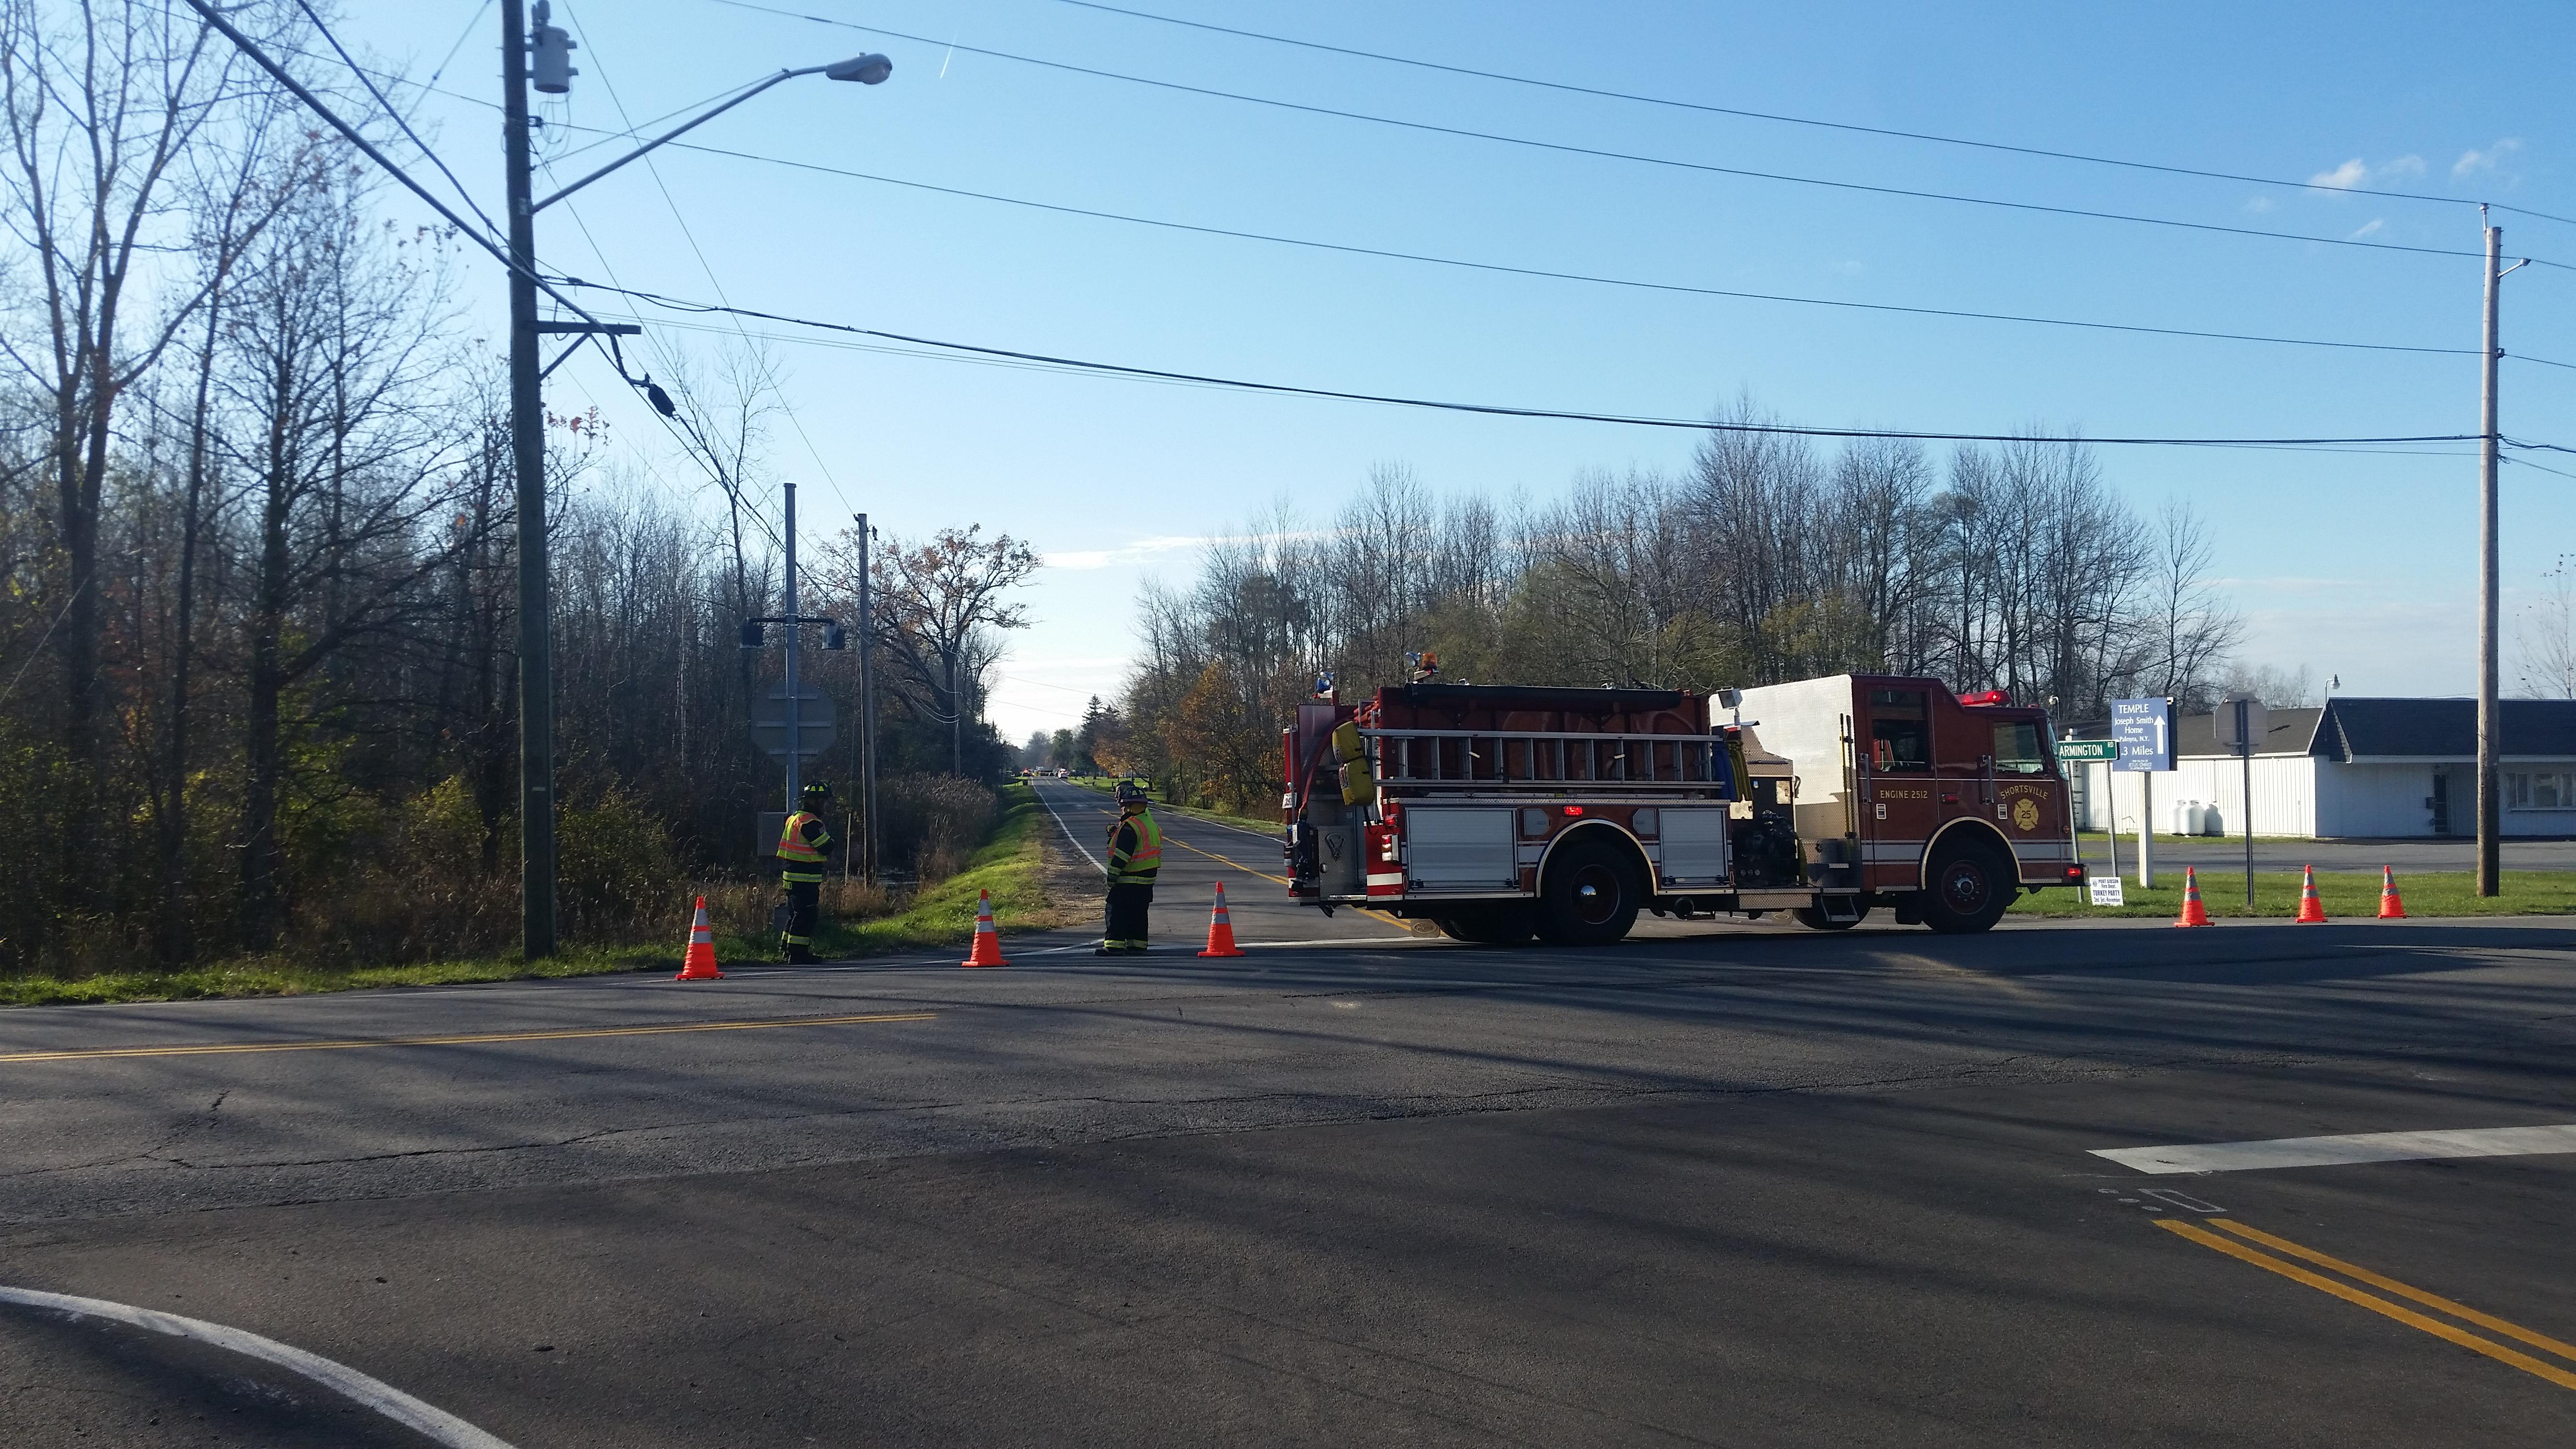 Emergency crews are on the scene of a serious crash in Manchester Thursday afternoon. (WHAM photo)